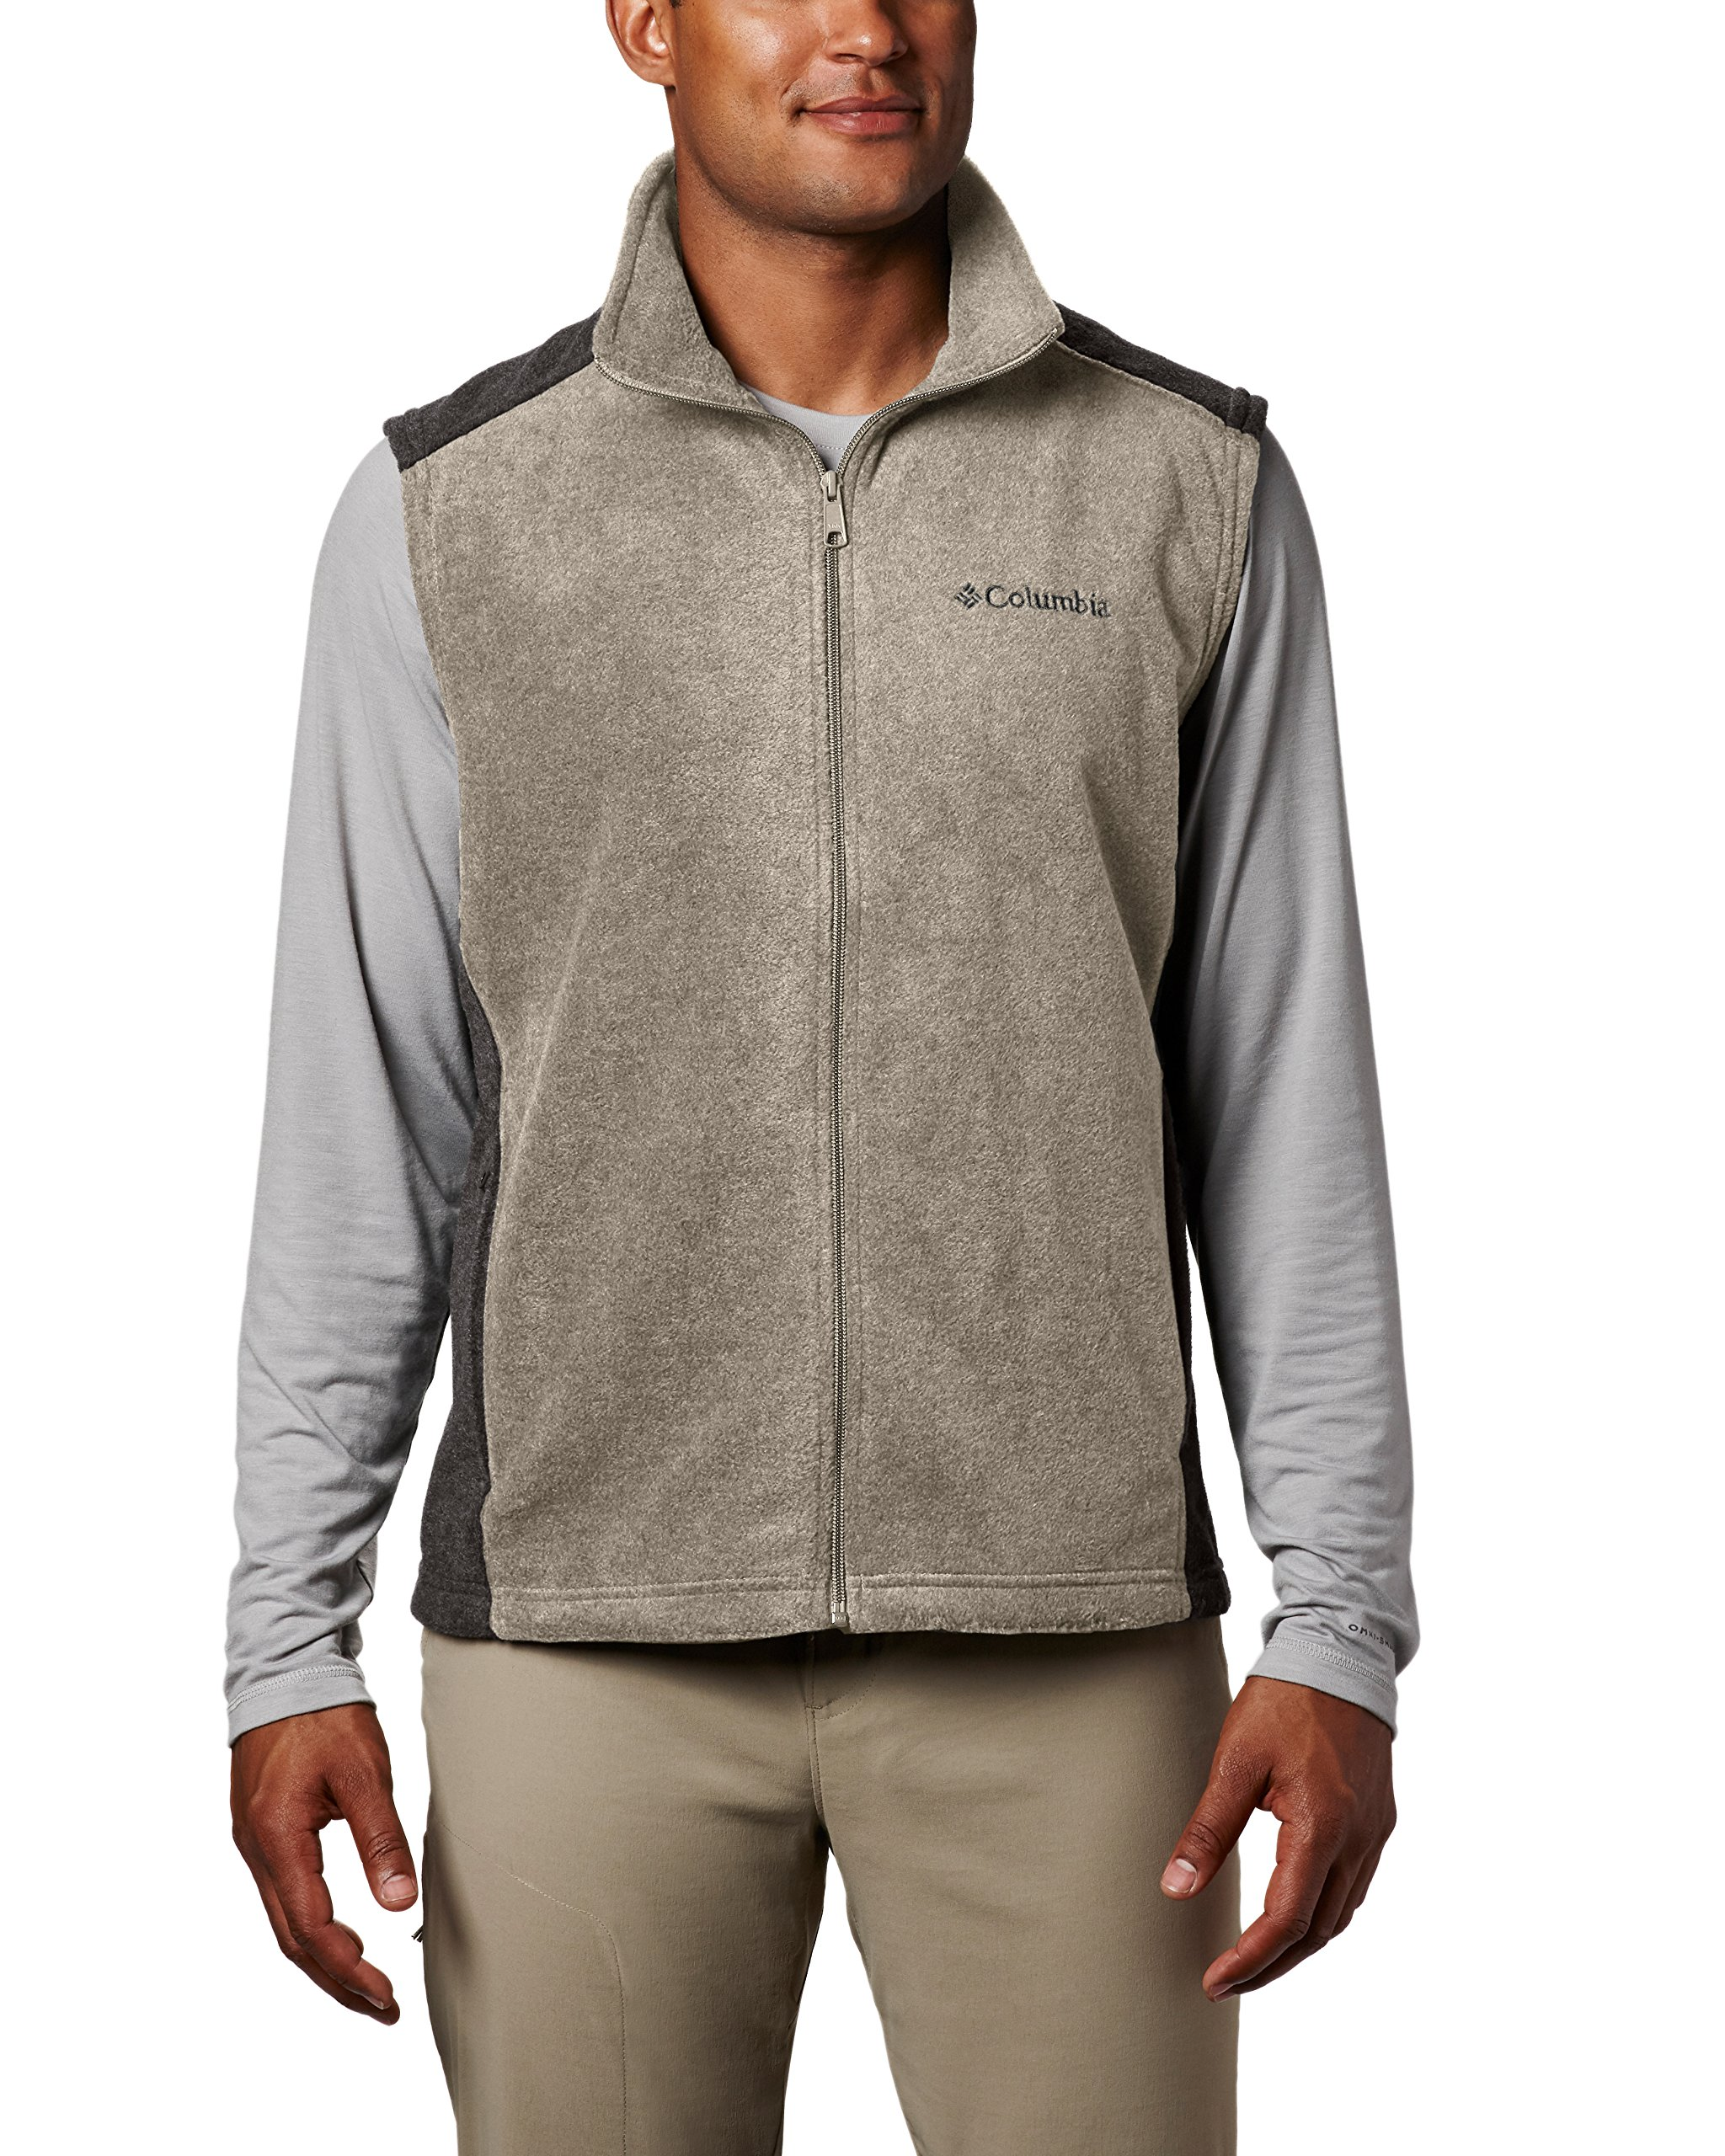 Columbia Men's Steens Mountain Full Zip Soft Fleece Vest, Tusk/Buffalo, Medium by Columbia